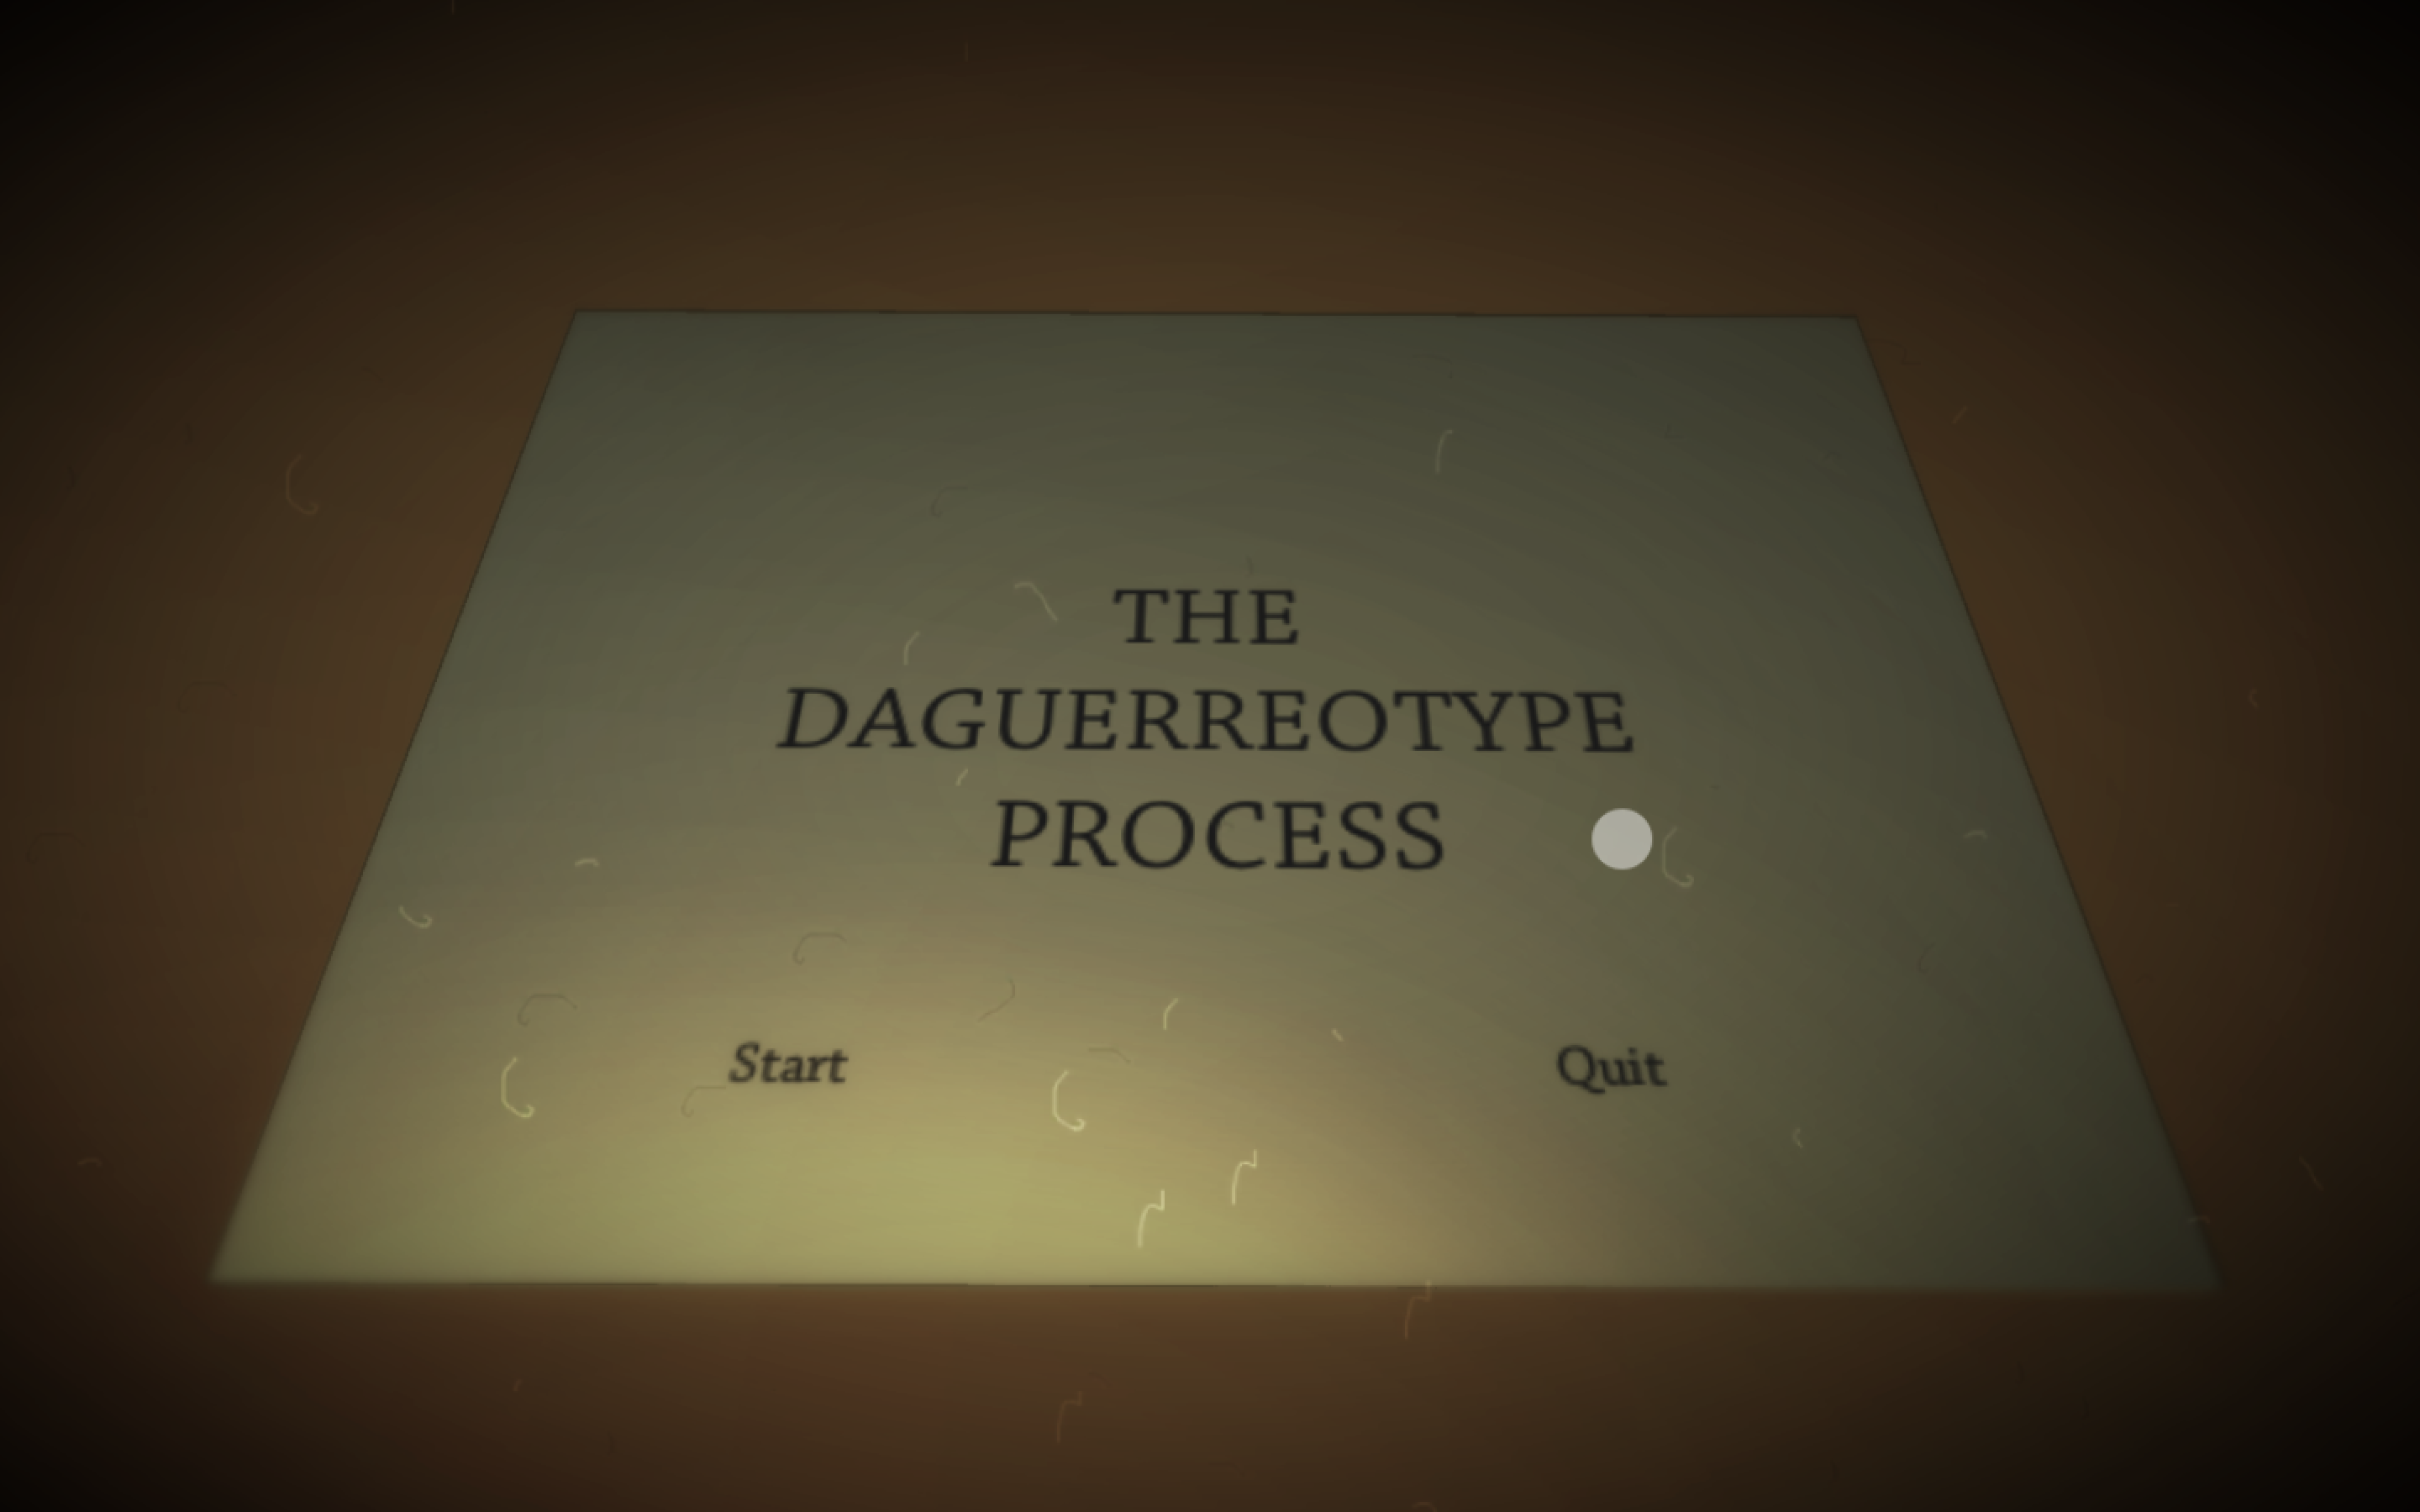 The Daguerreotype Process